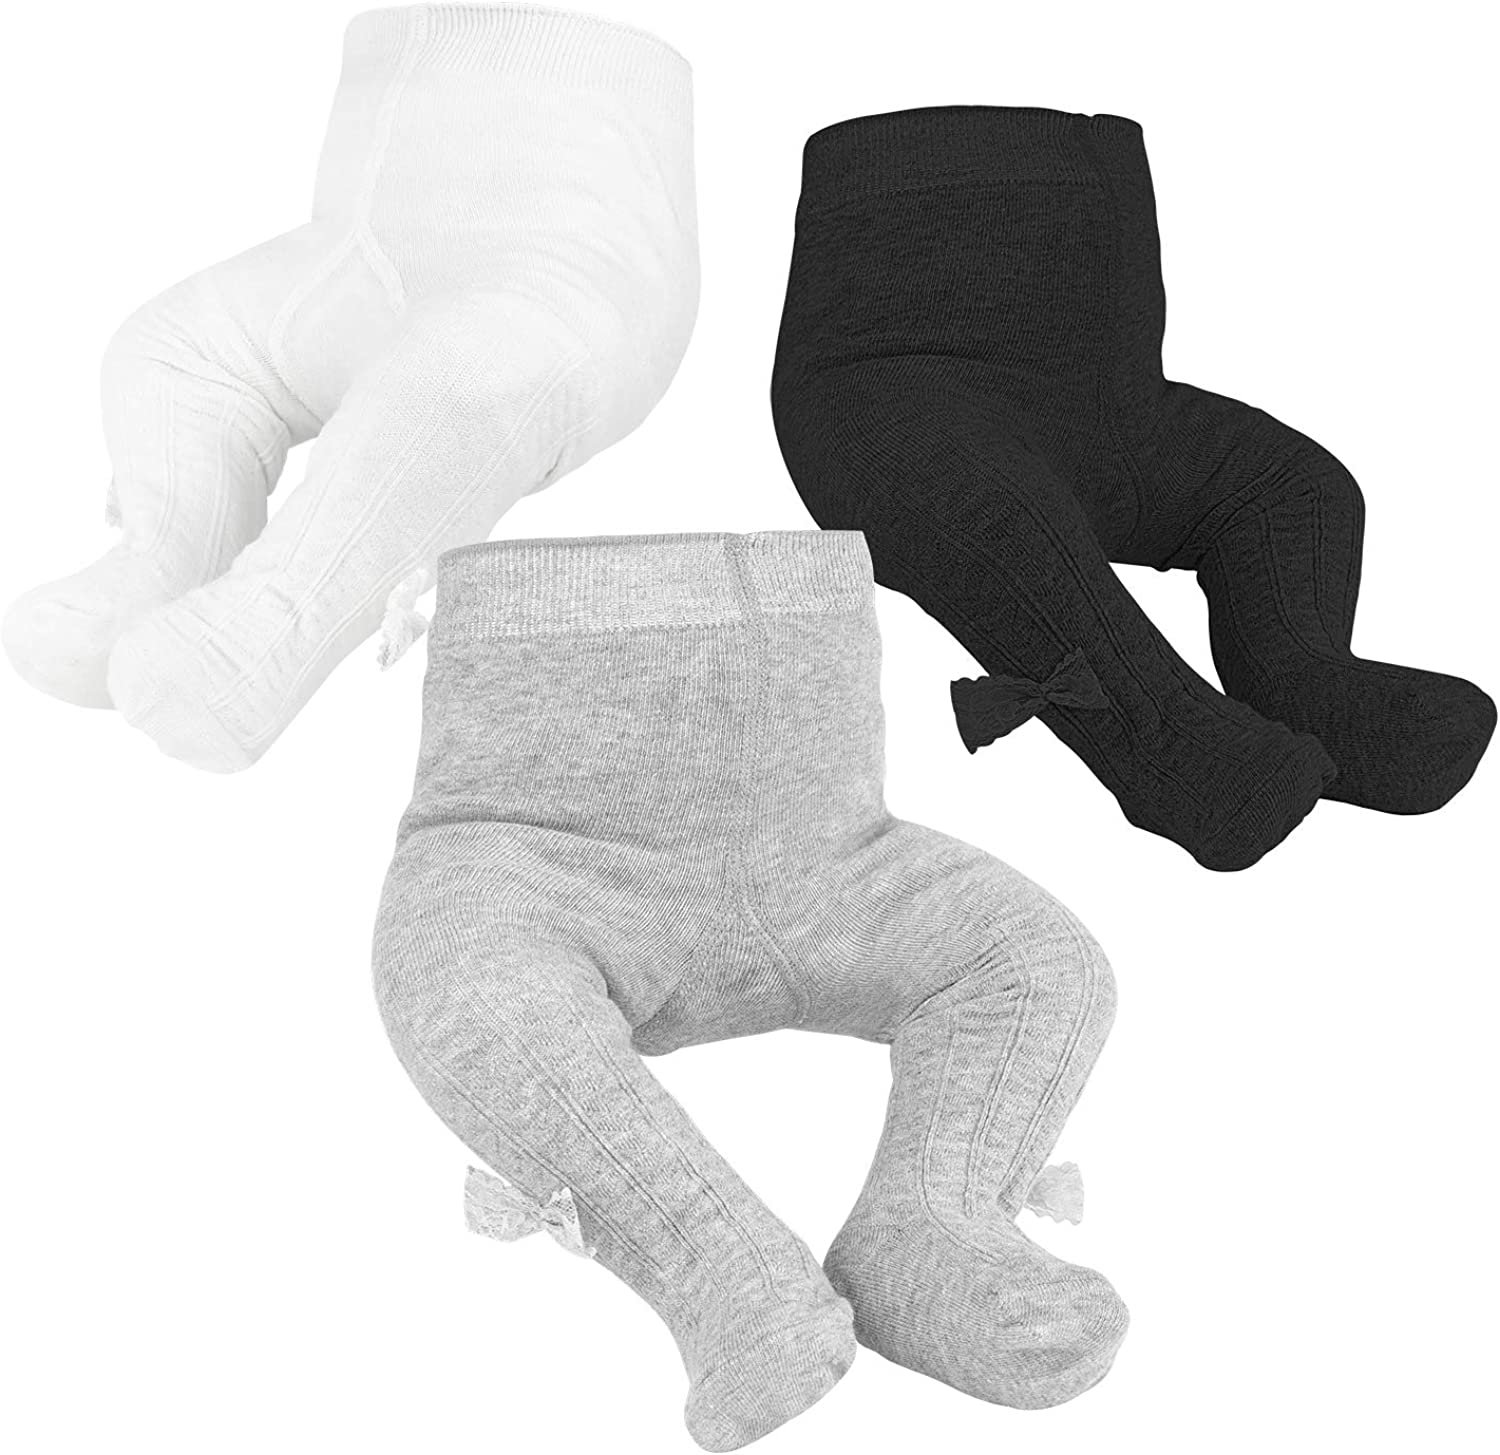 Baby Girls Tights Toddler Cable Knit Leggings Infant Soft Seamless Tights Newborn Pants Stockings with Lovely Bowknot